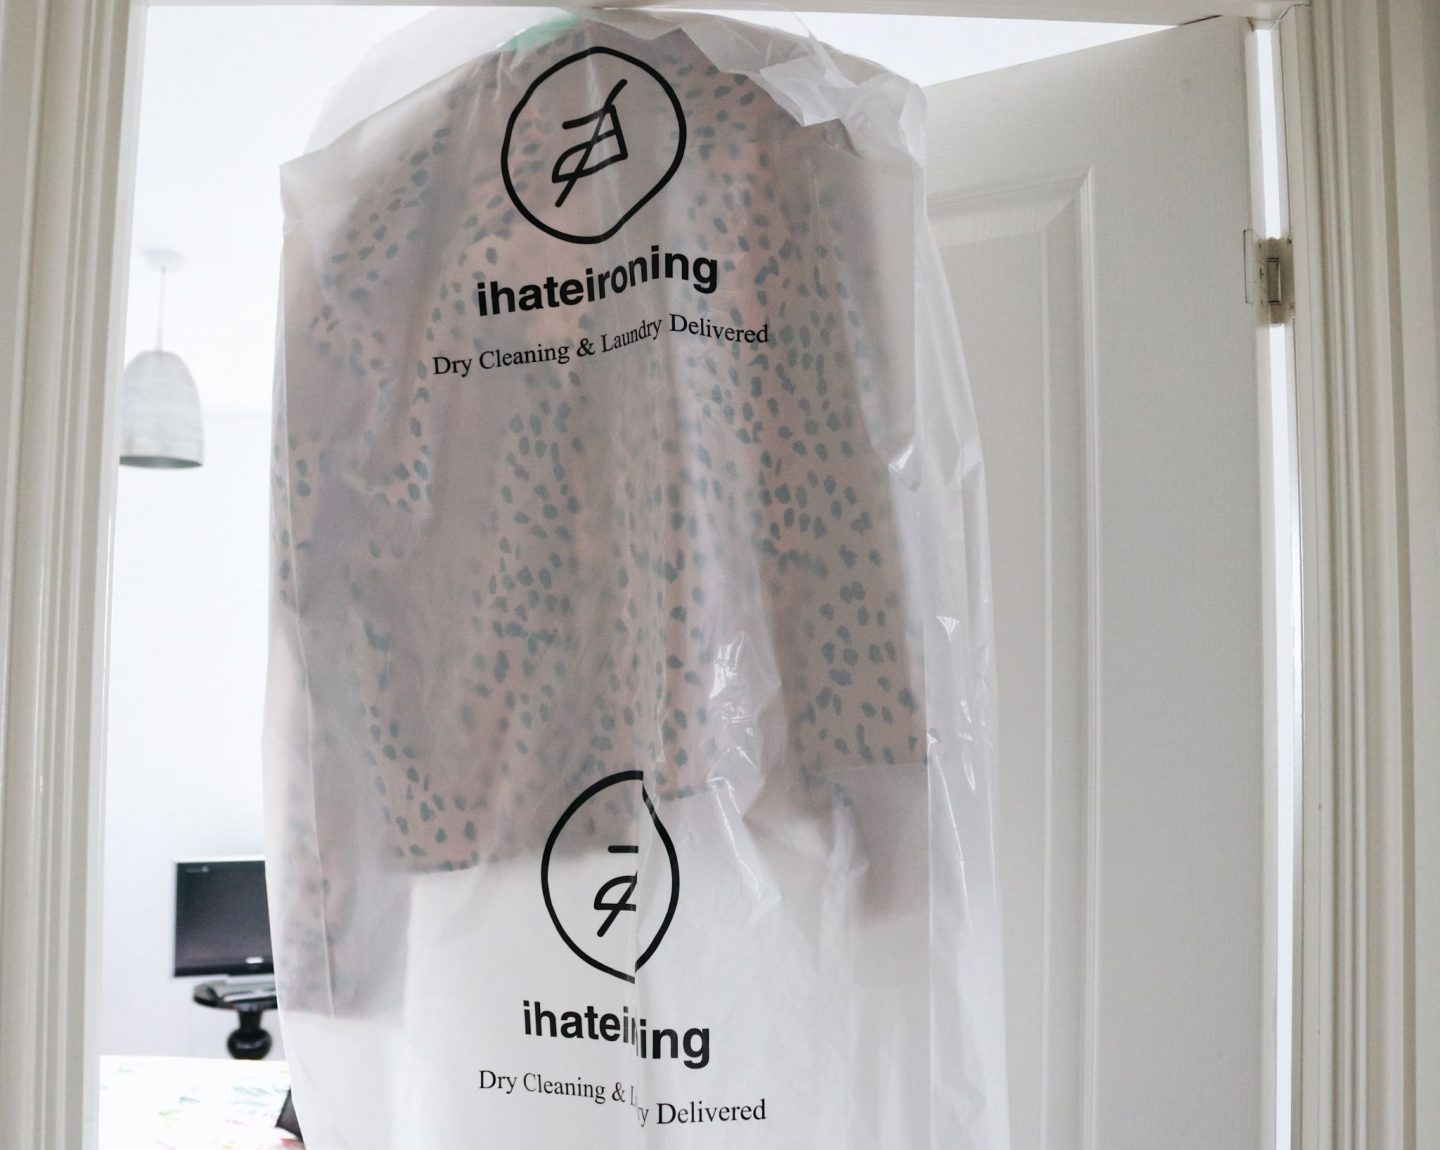 ihateironing dry cleaning service